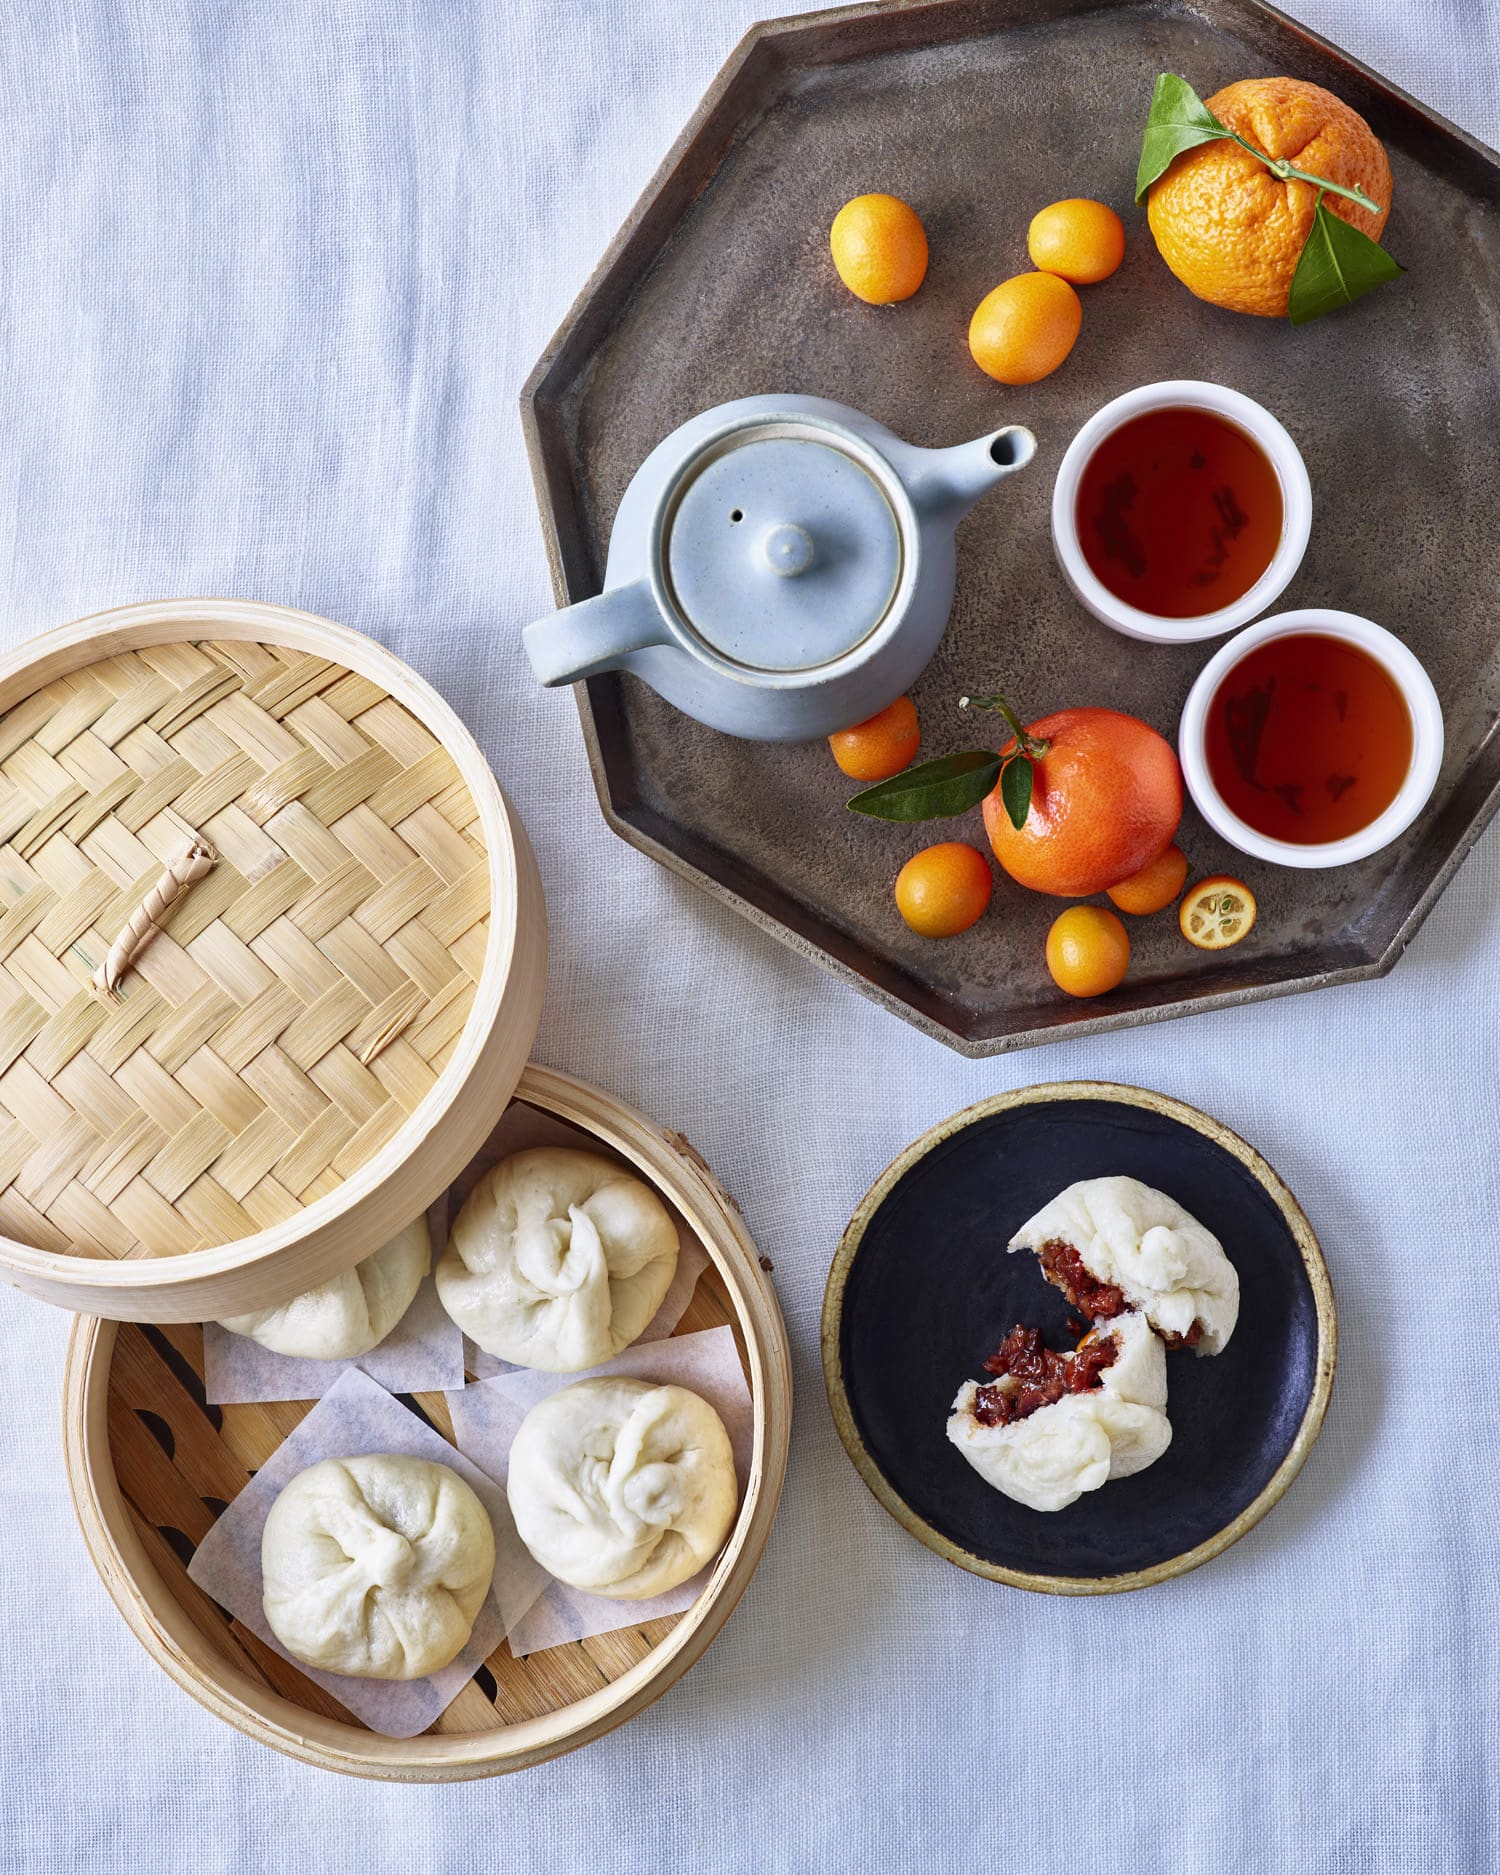 Chinese Steamed Pork Buns Are Pure Comfort To Me. Here's How I Make Them at Home.